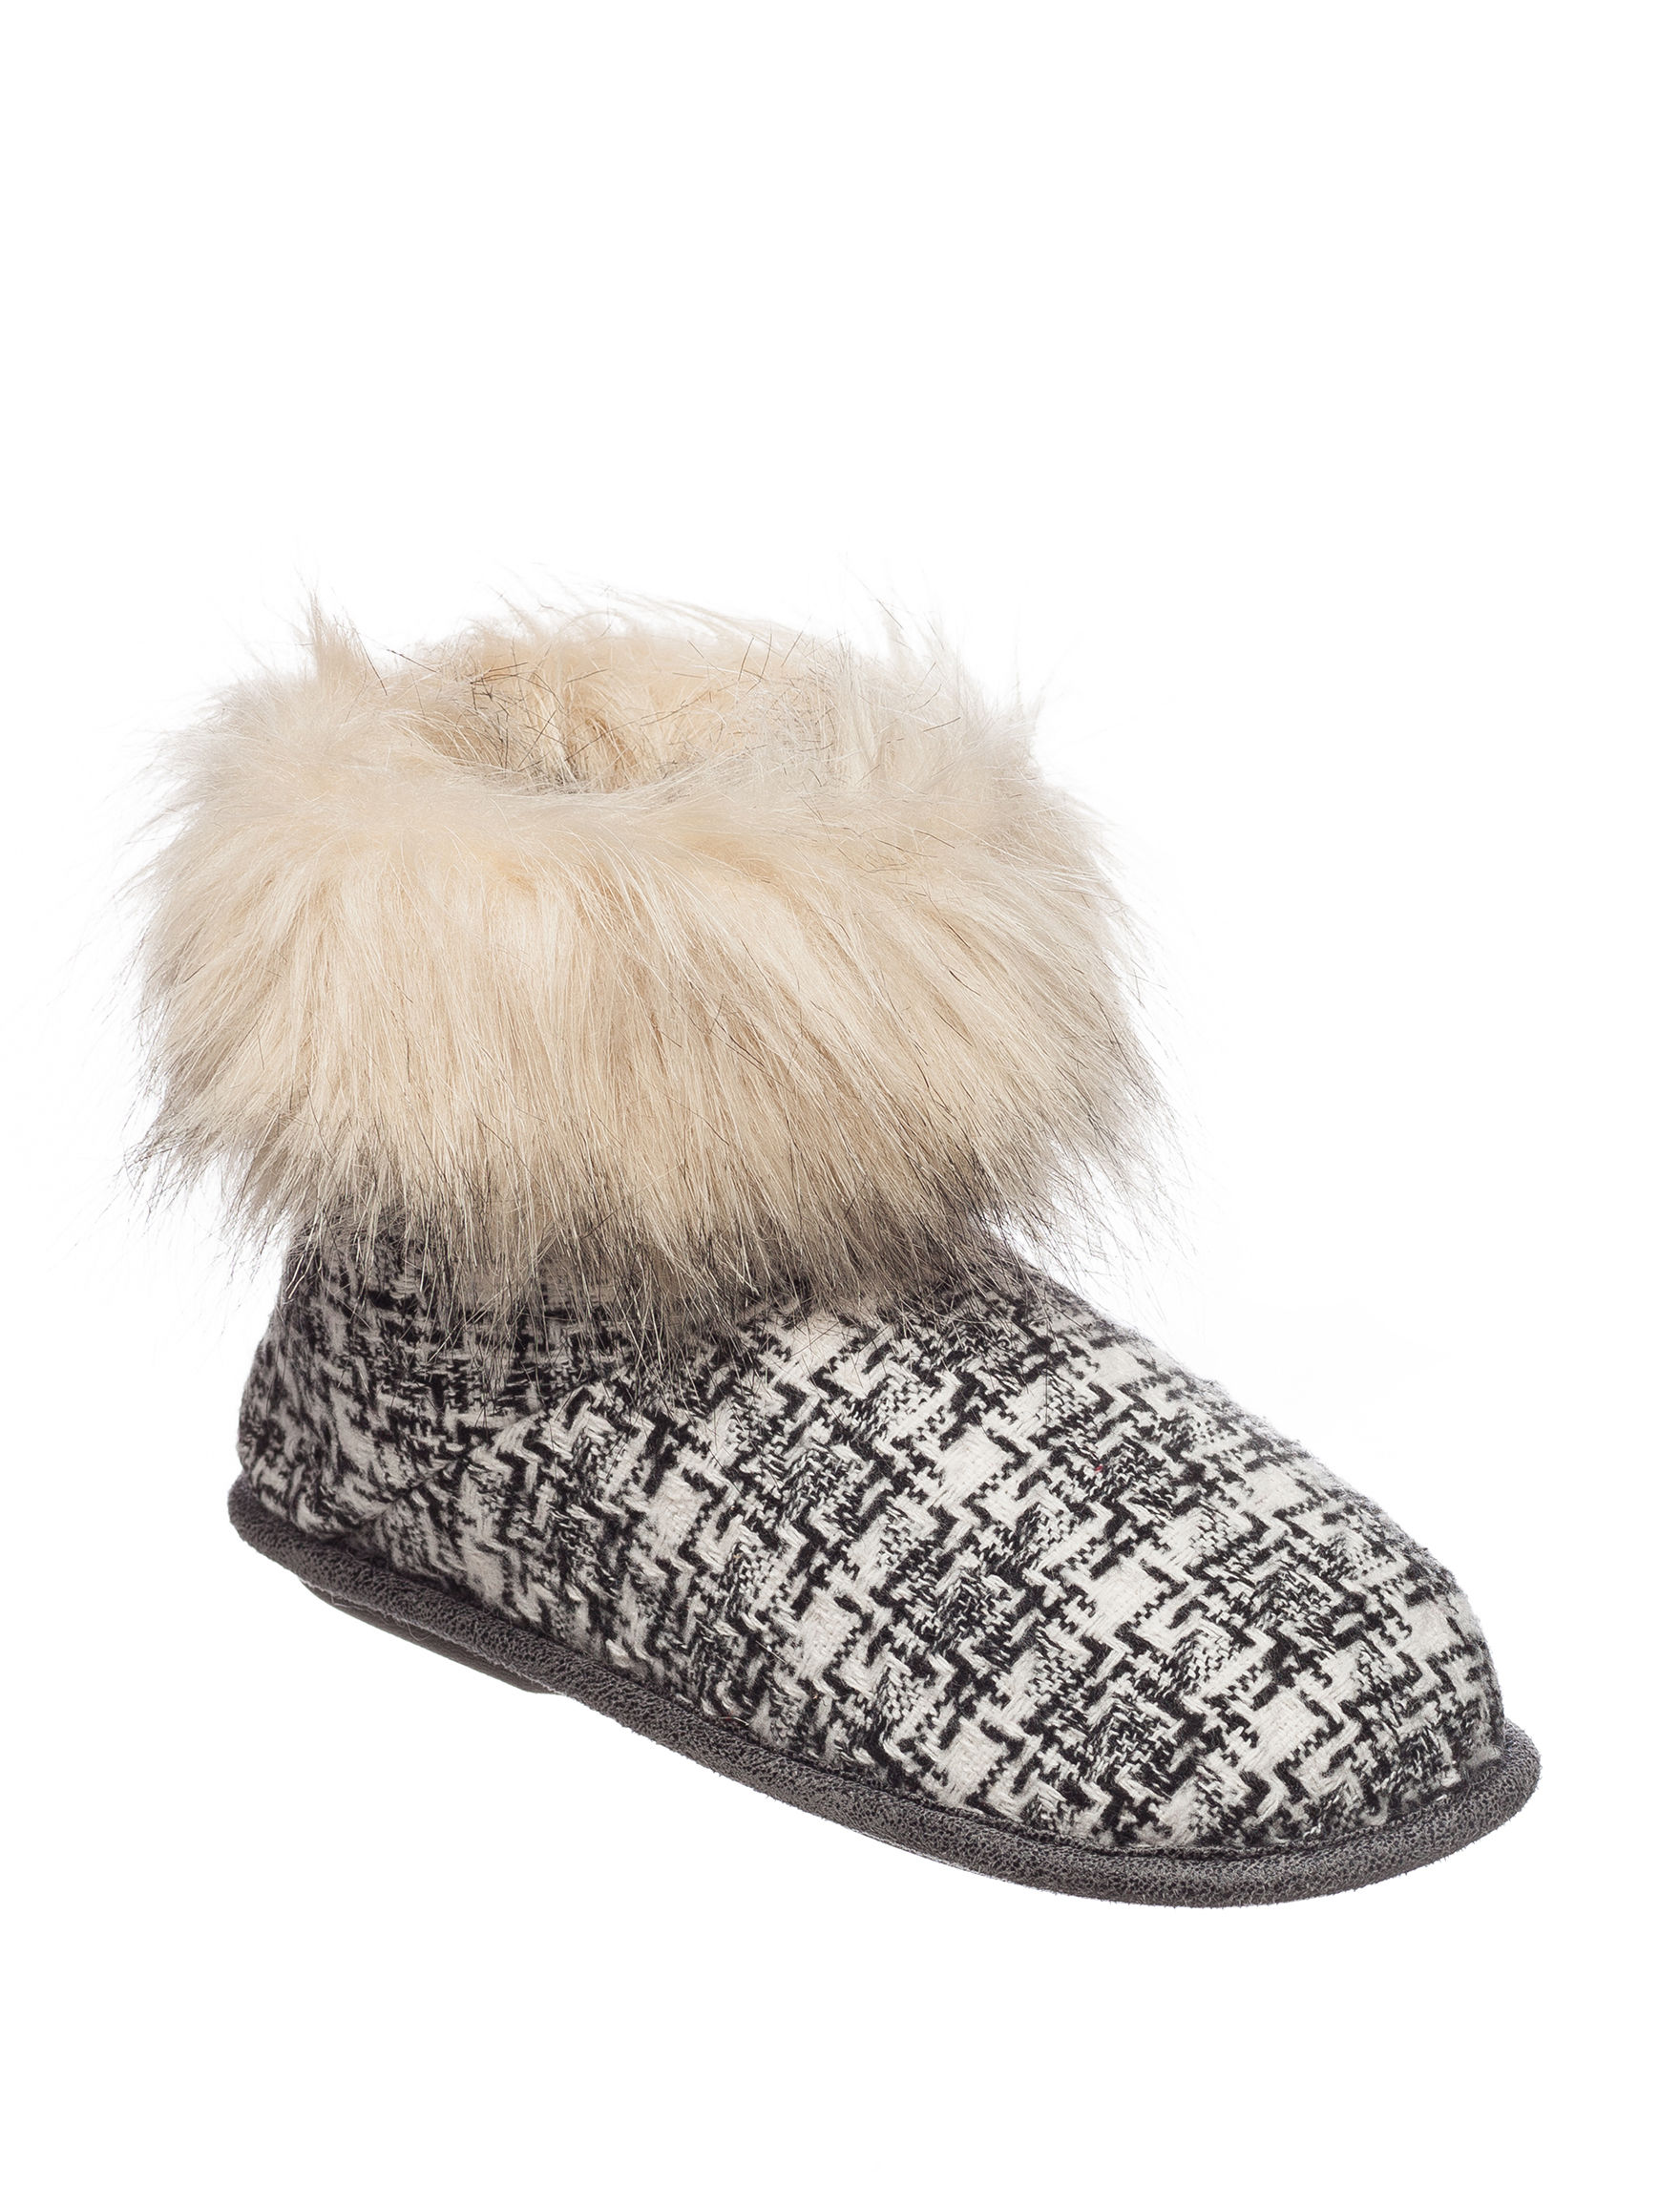 Cuddl Duds Plaid Faux Fur Cuff Boot Slippers | Stage Stores